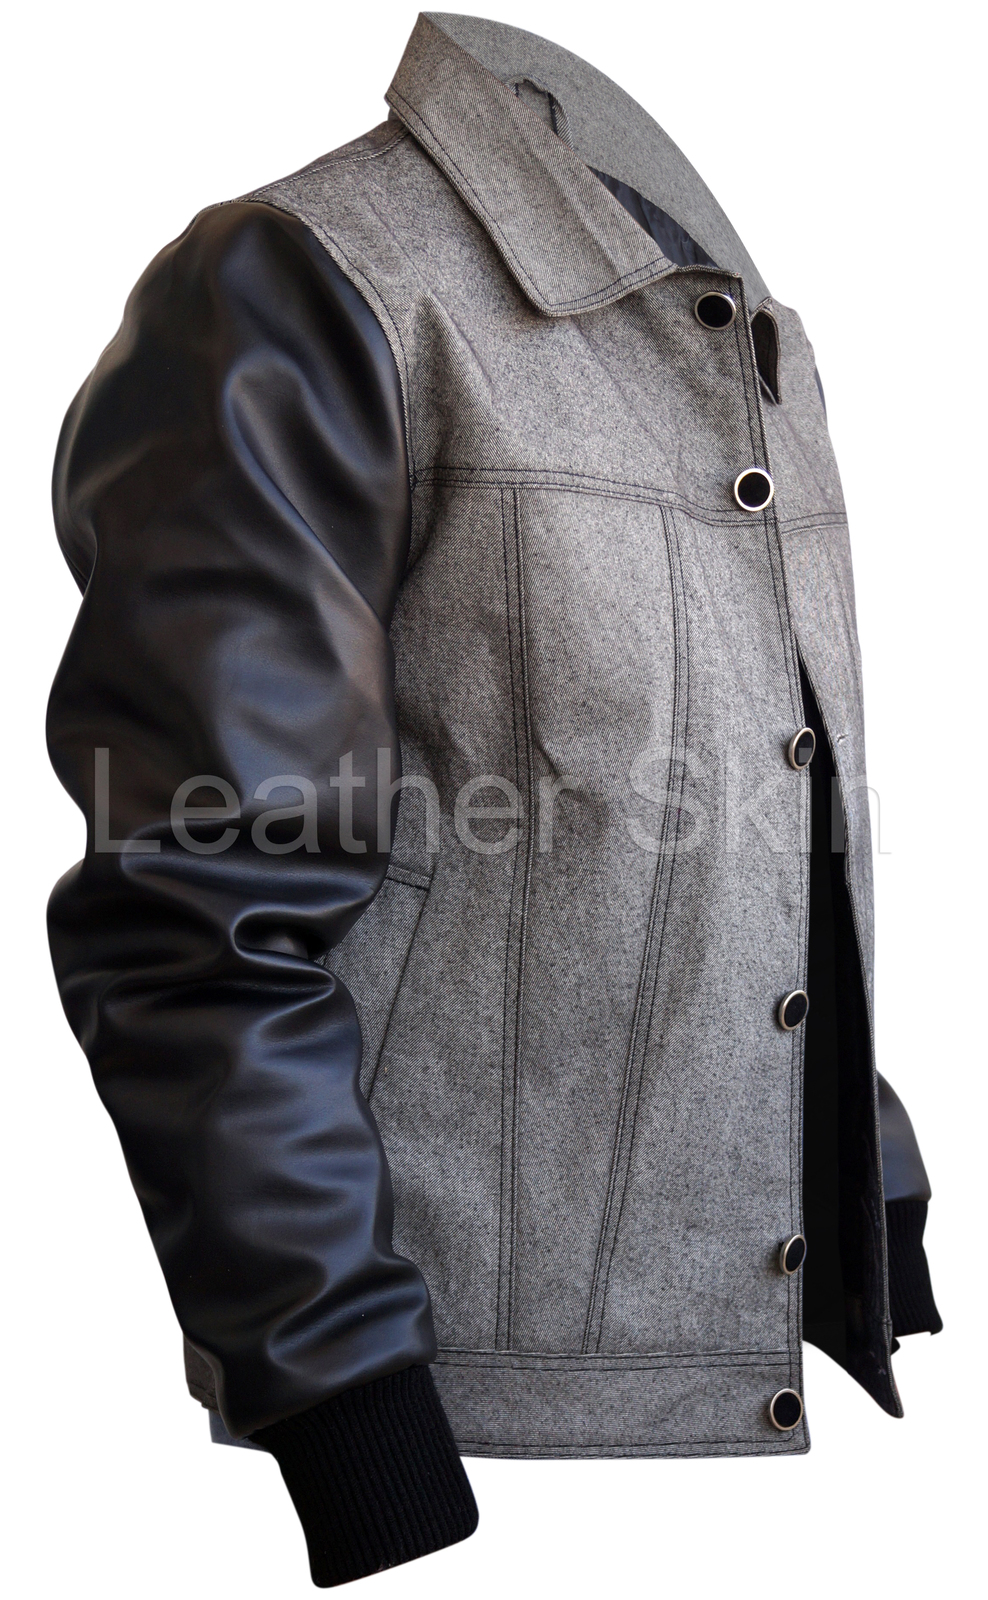 Men jean jacket with leather sleeves